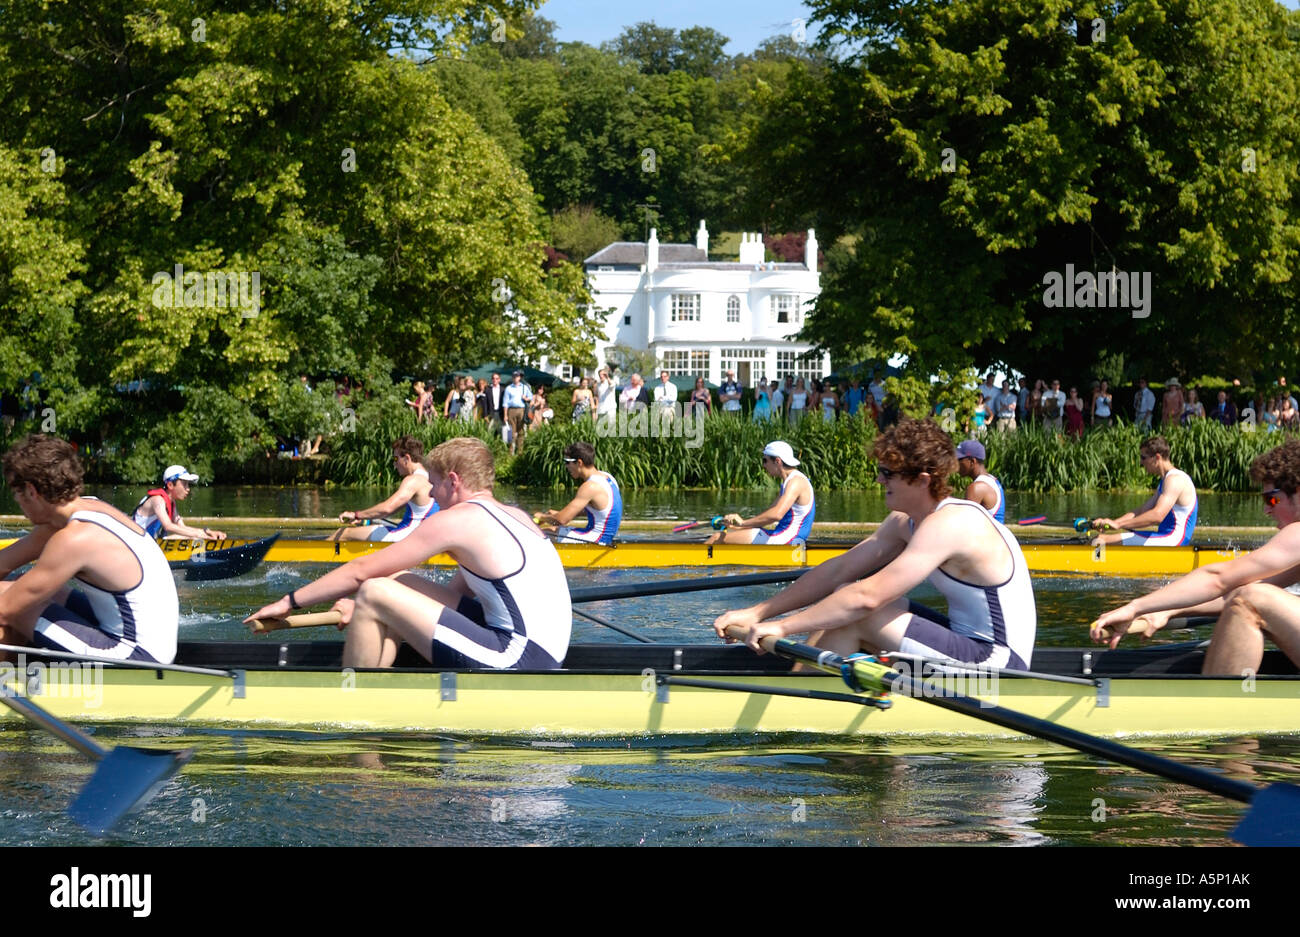 Fours  racing down  the course at the Henley Royal Regatta - Stock Image